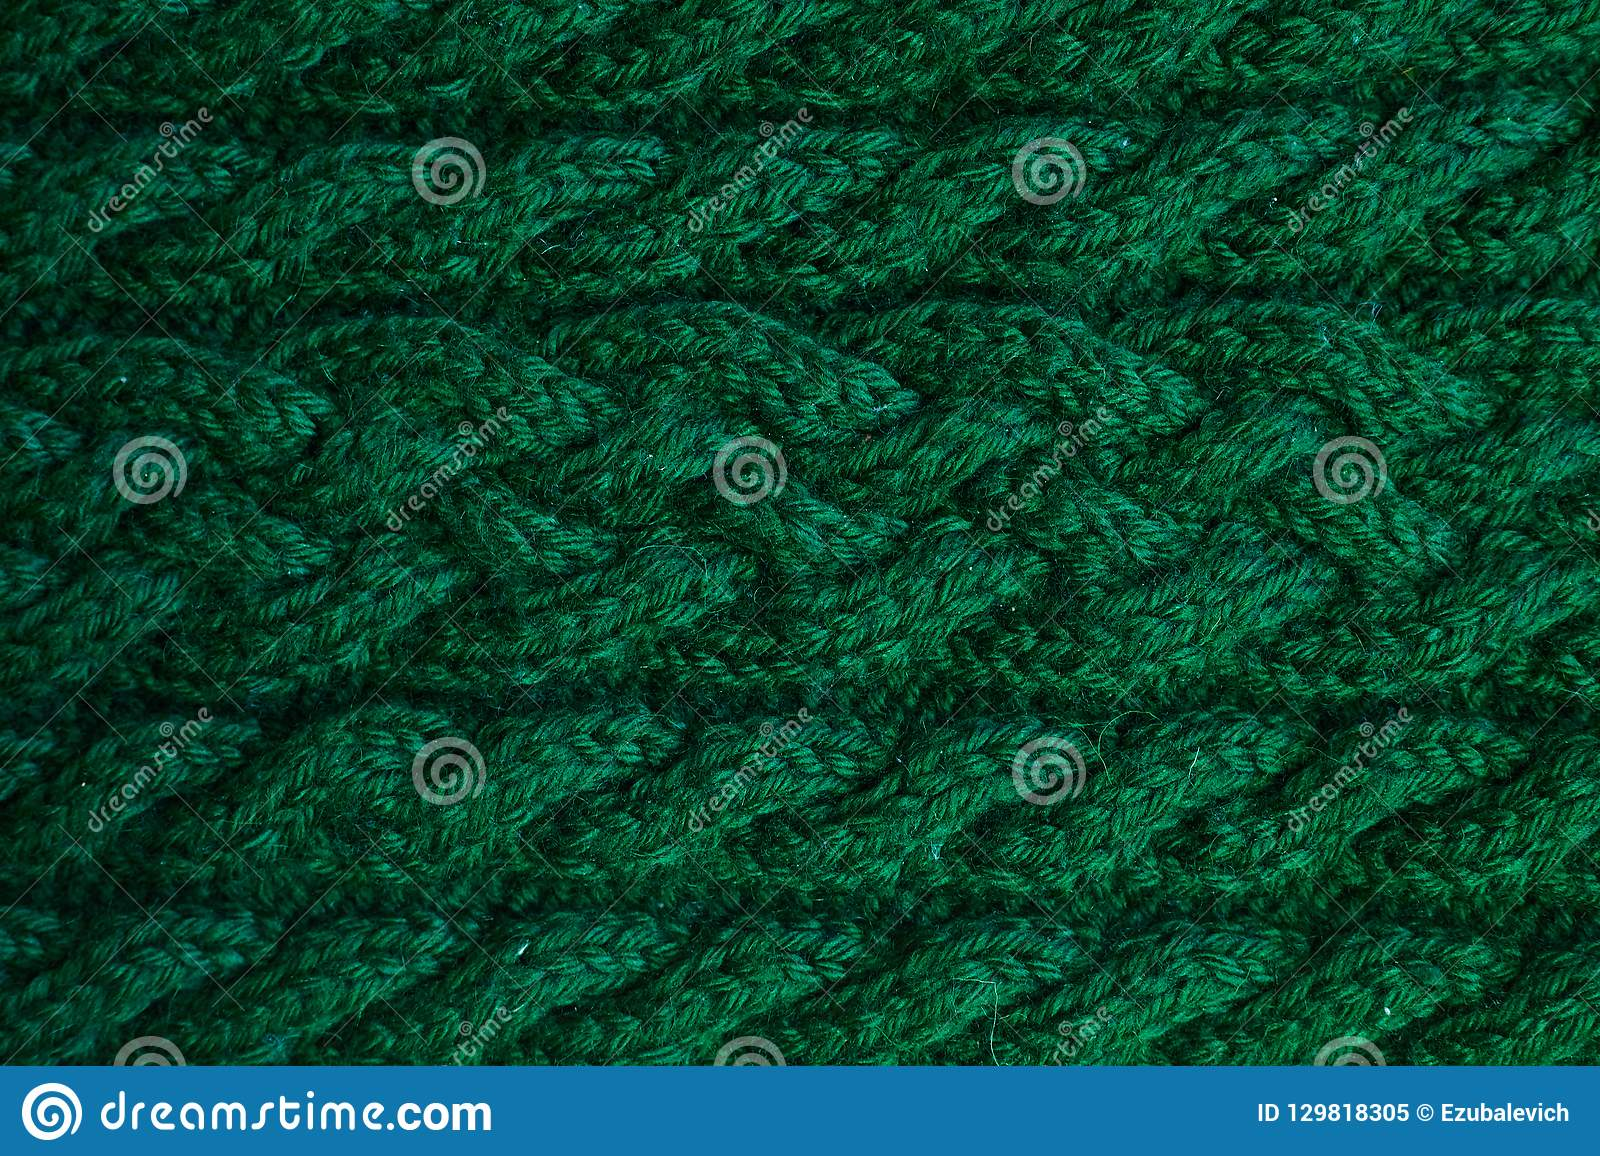 Texture of warm green knitted winter clothes.